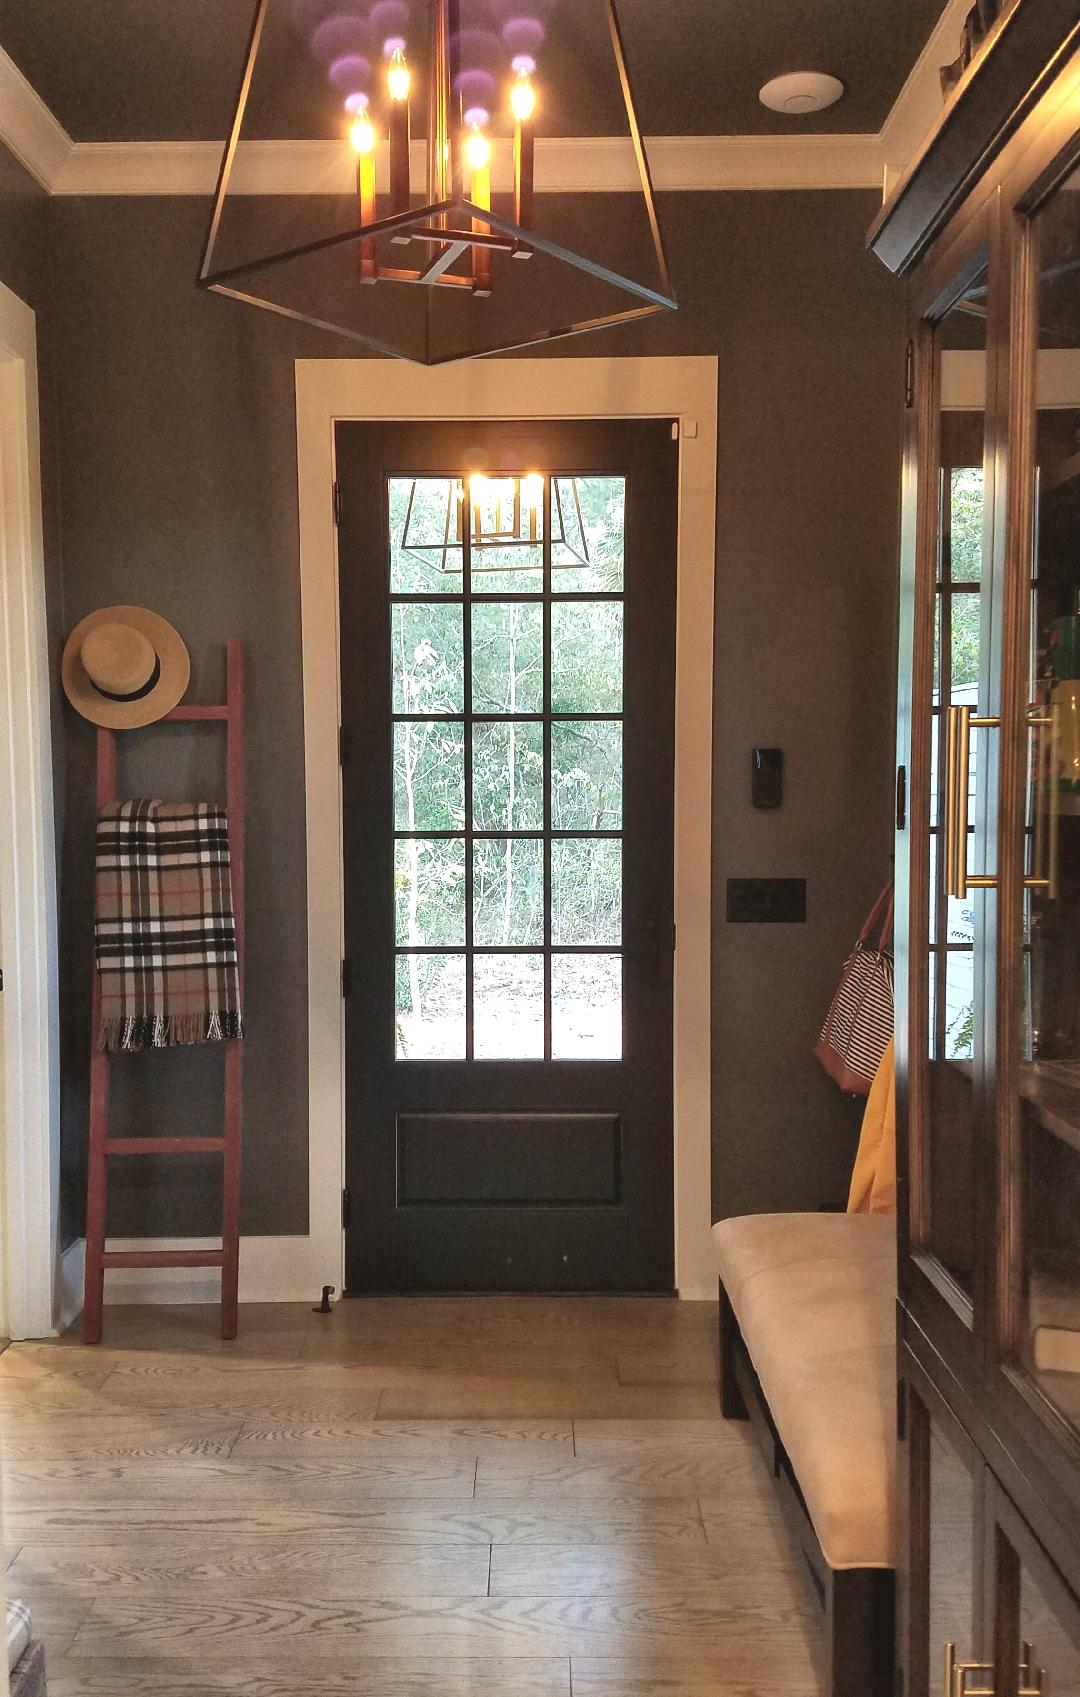 To the right of the door (above the light switch plate) in this gorgeous mudroom is the SimpliSafe keypad.